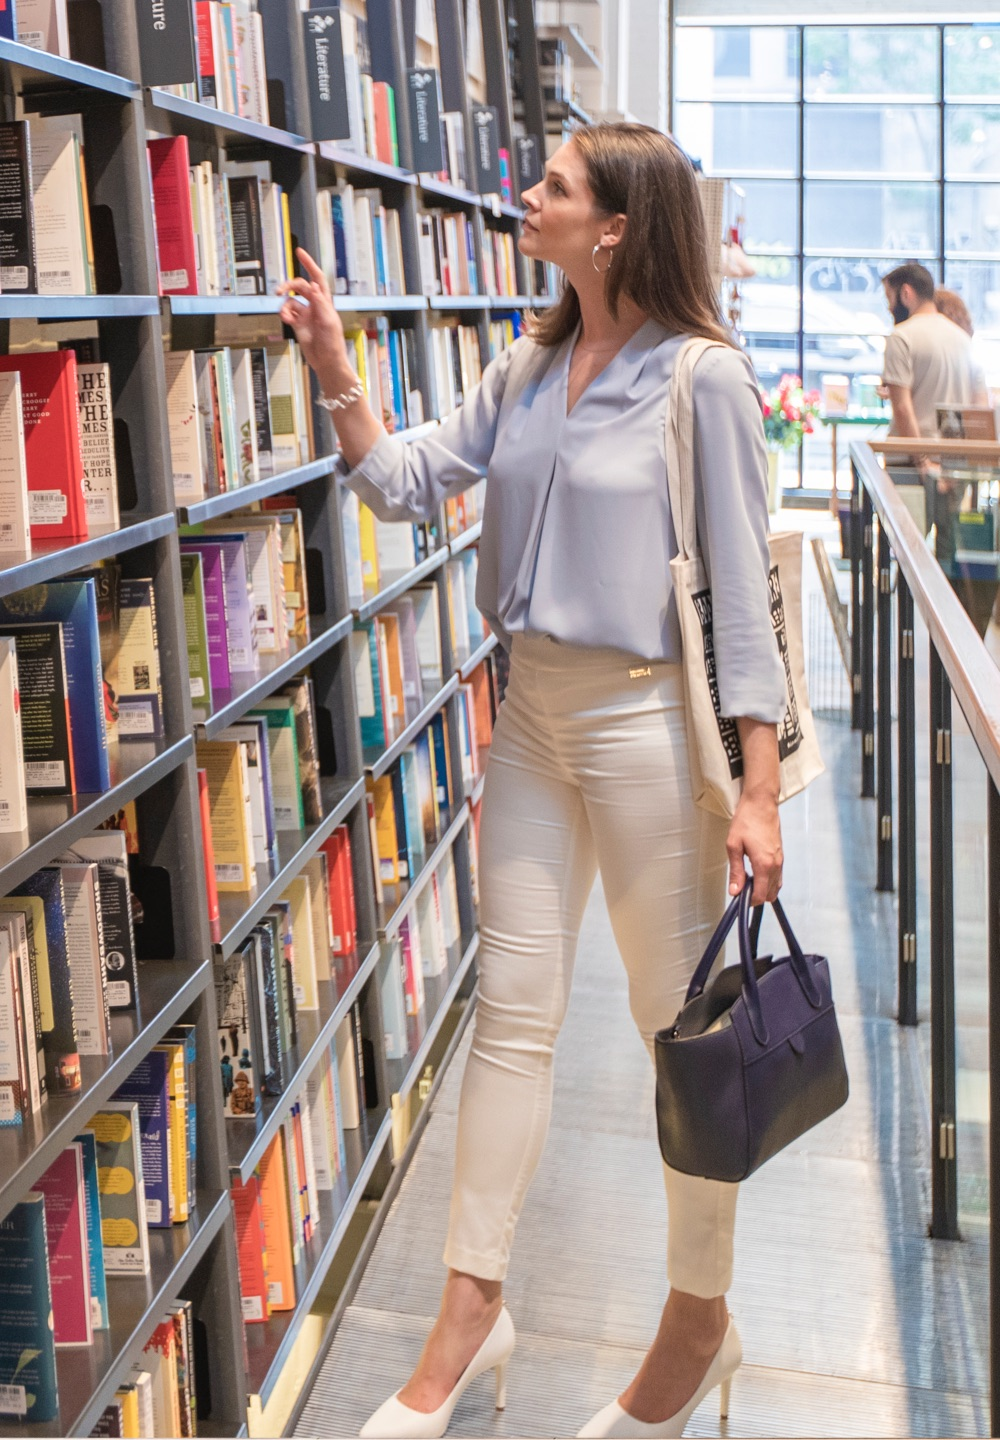 A brunette woman browses shelves at a NYC bookstore